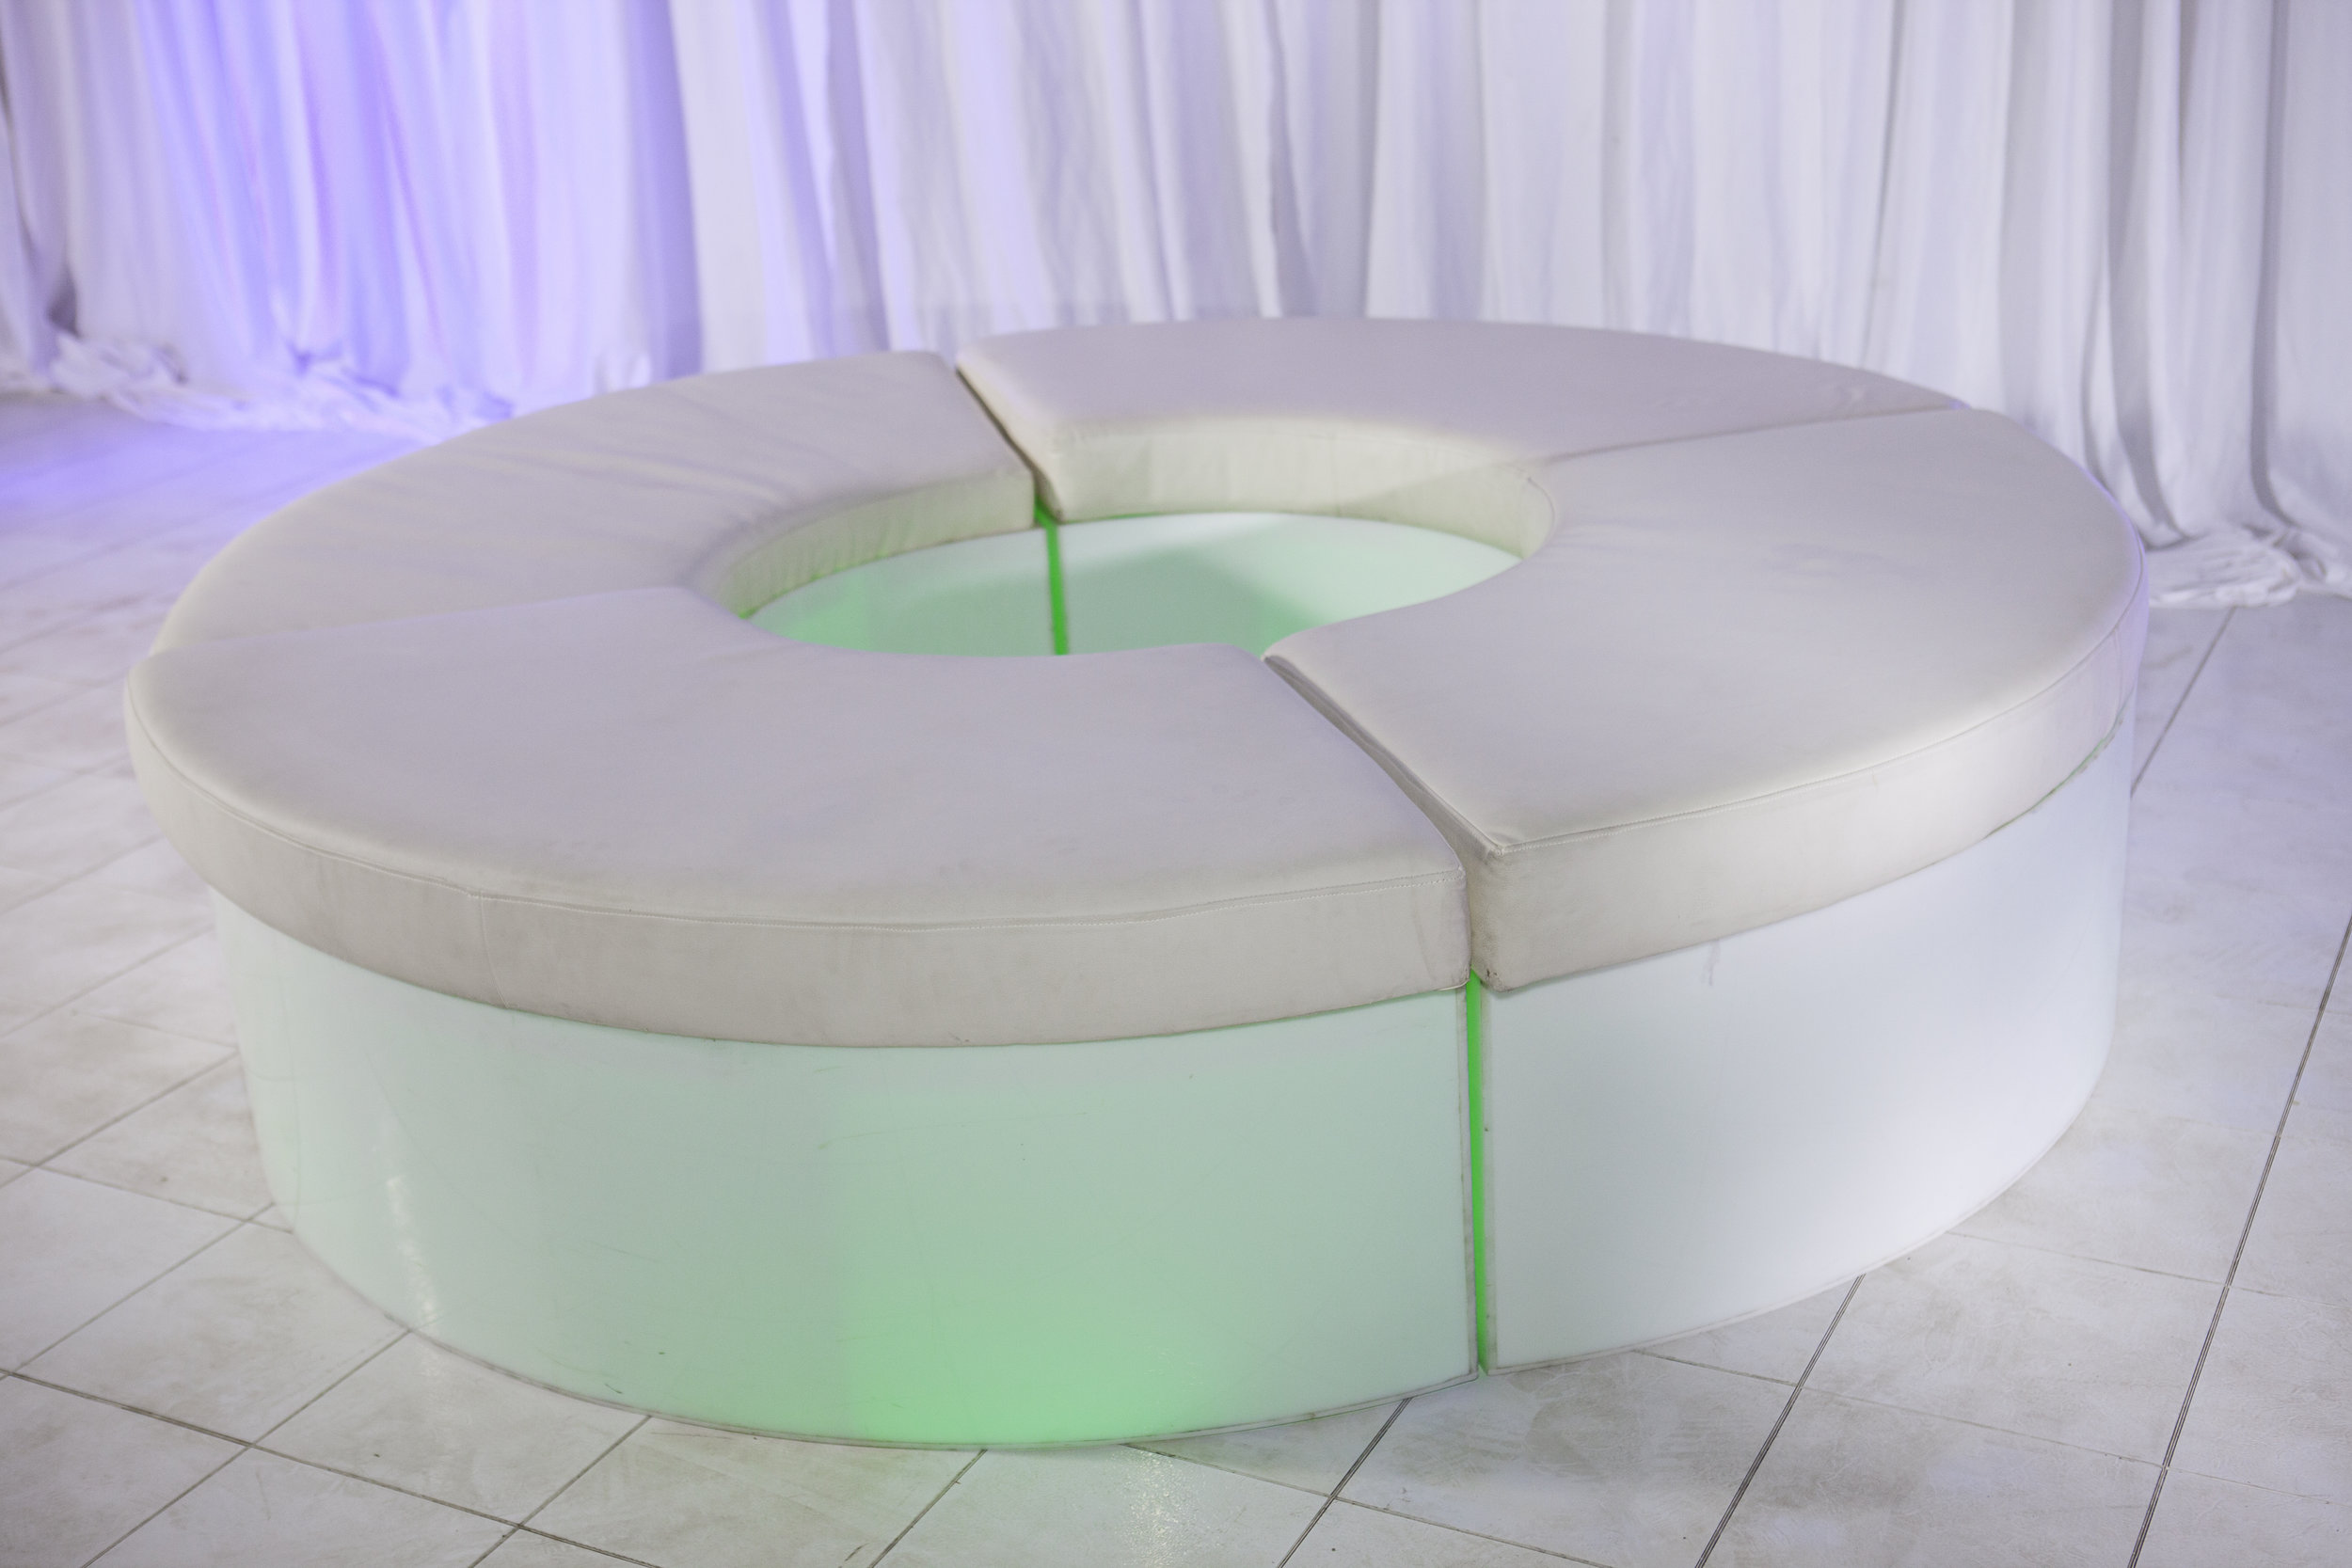 Benches- Circular Benches With LED Light_4.jpg